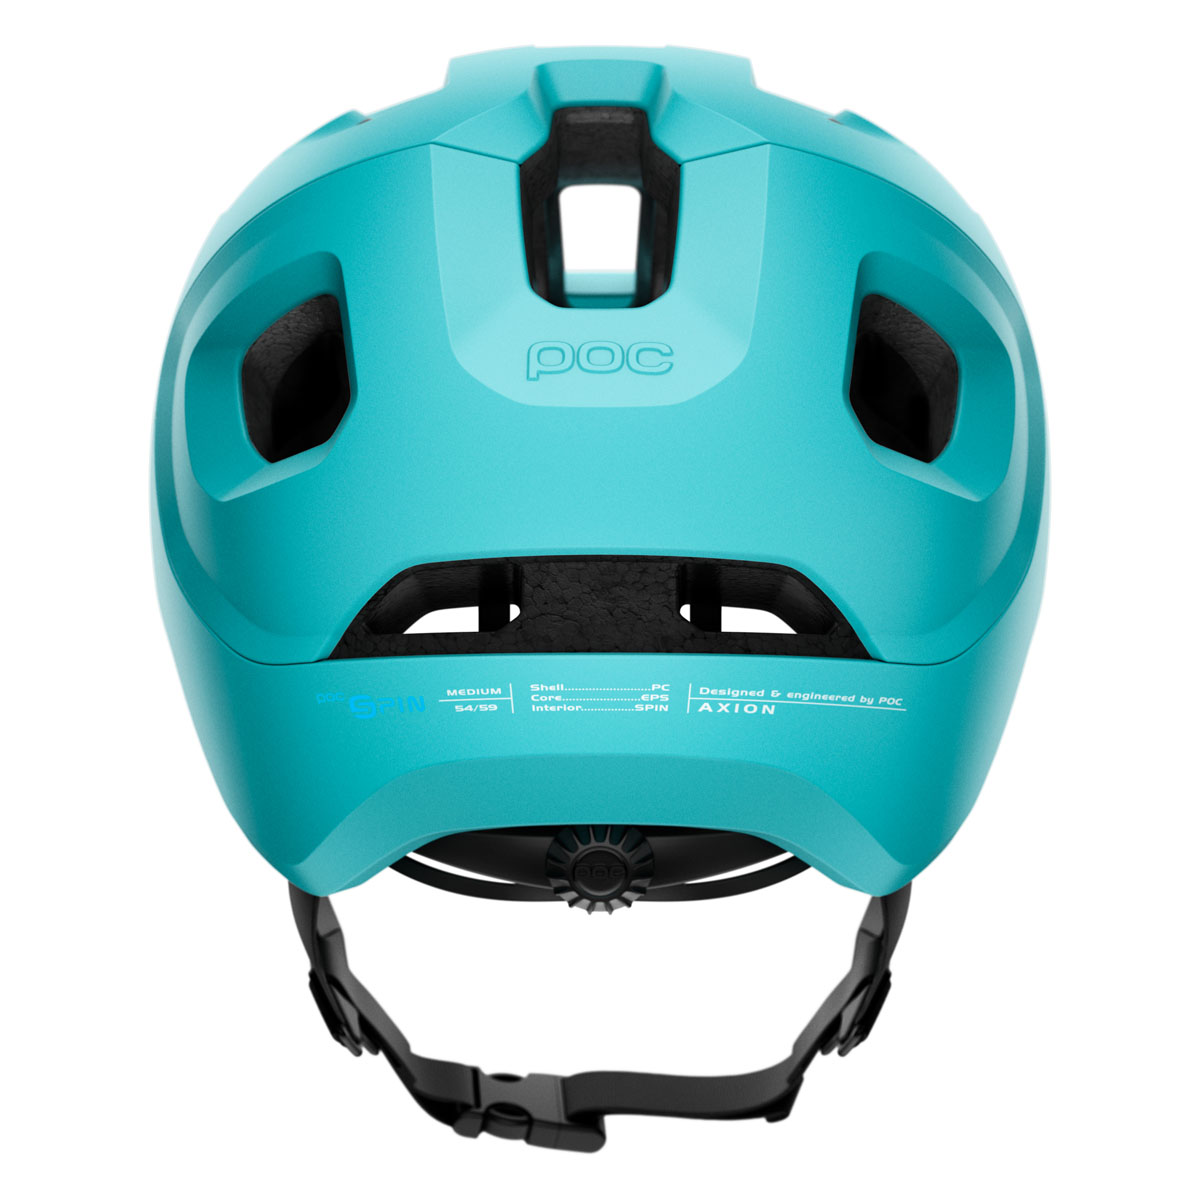 POC adds new Axion SPIN helmet, NFC Medical IDs, & new Clarity sunglasses